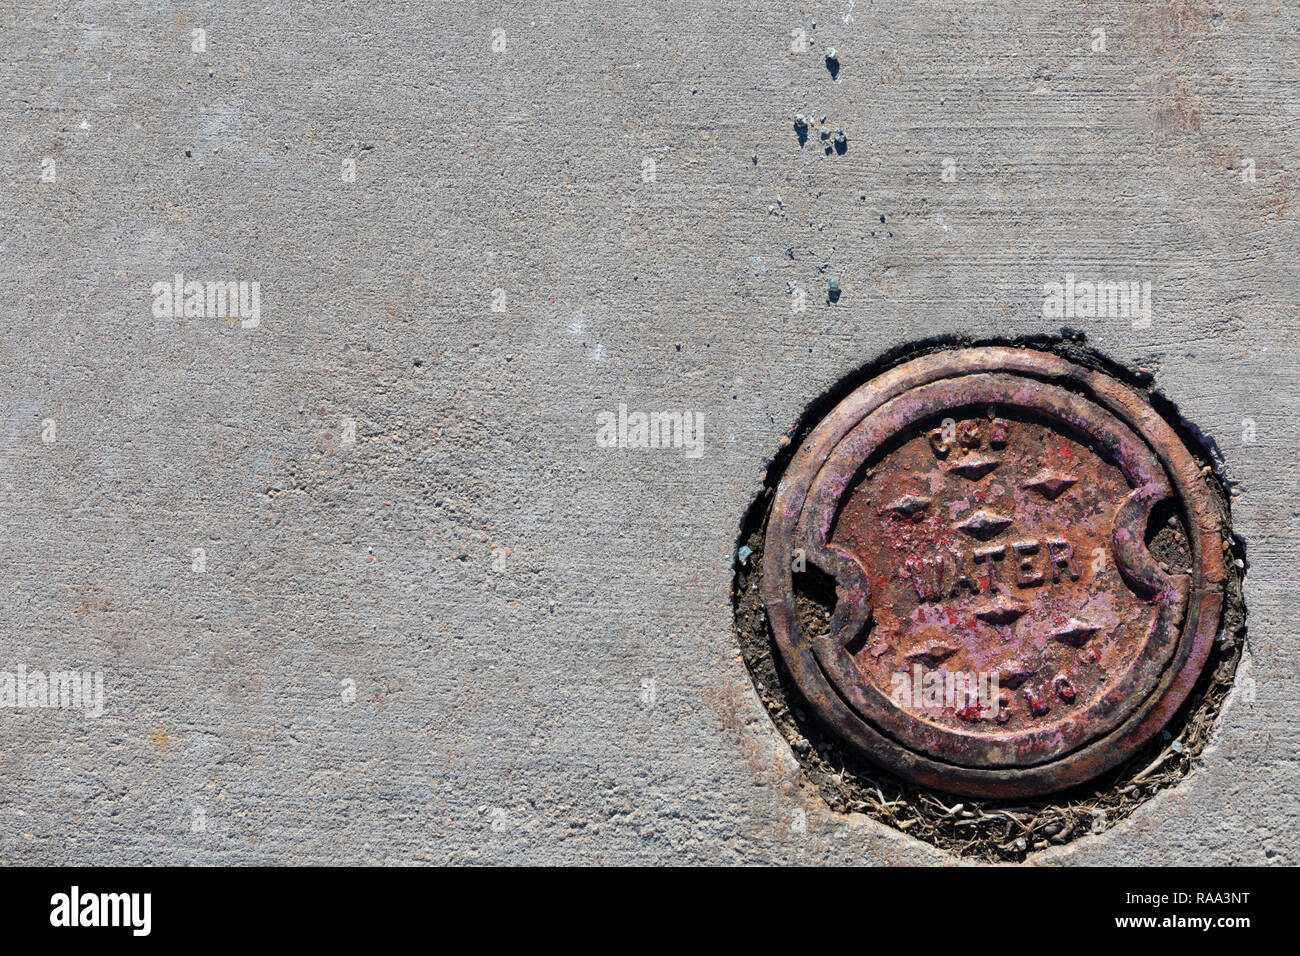 Water access cover. - Stock Image